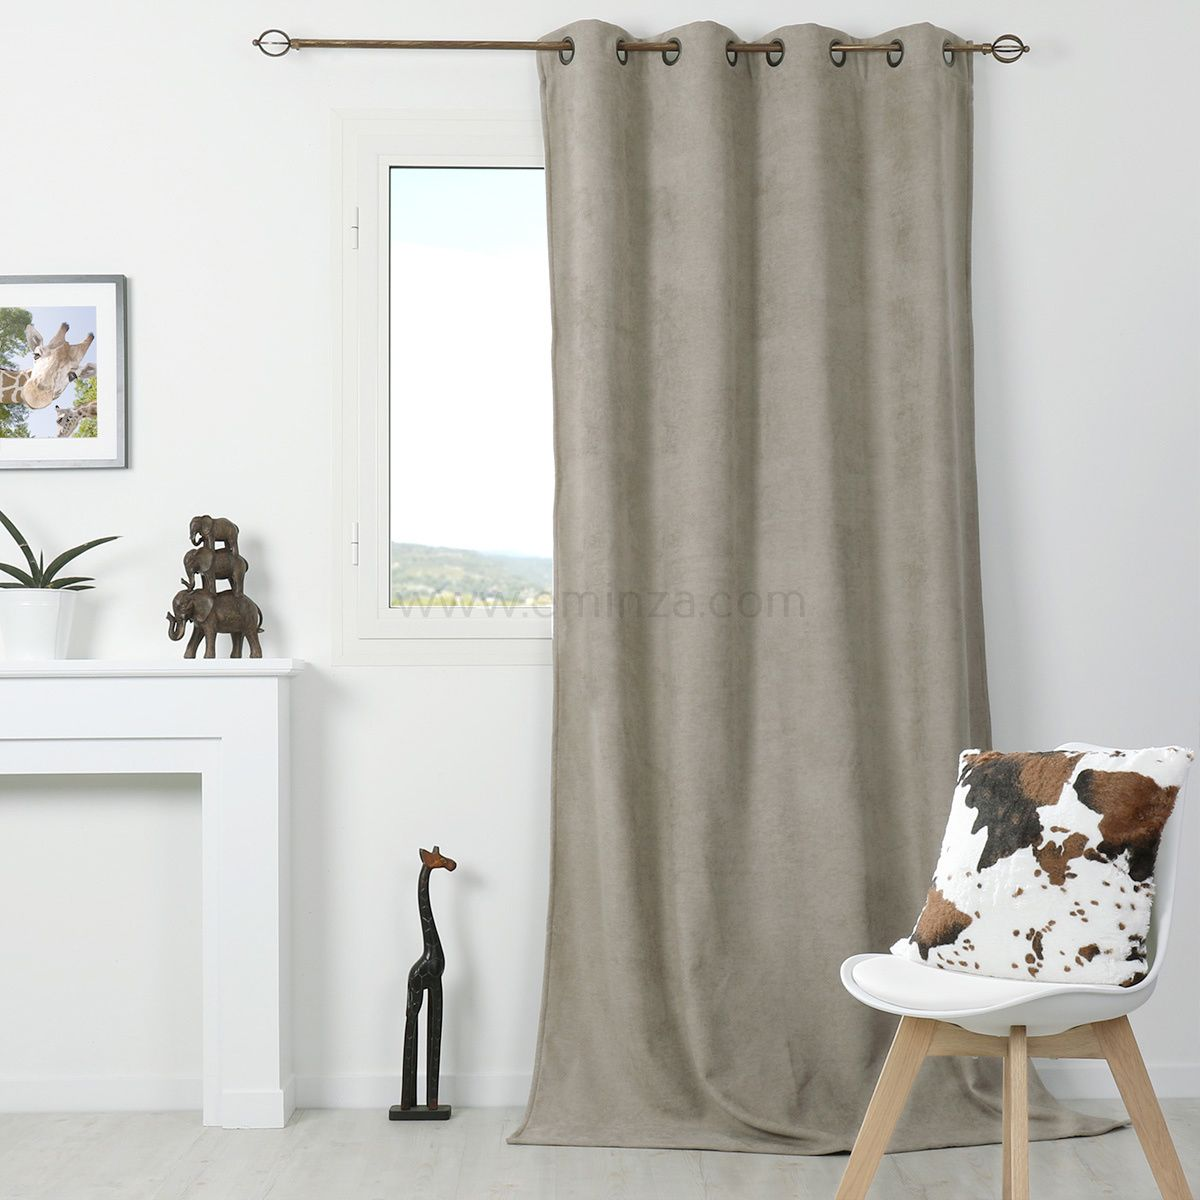 Rideau Montagne Taupe Rideau Occultant Isolant 140 X H260 Cm Alaska Taupe Cocooning